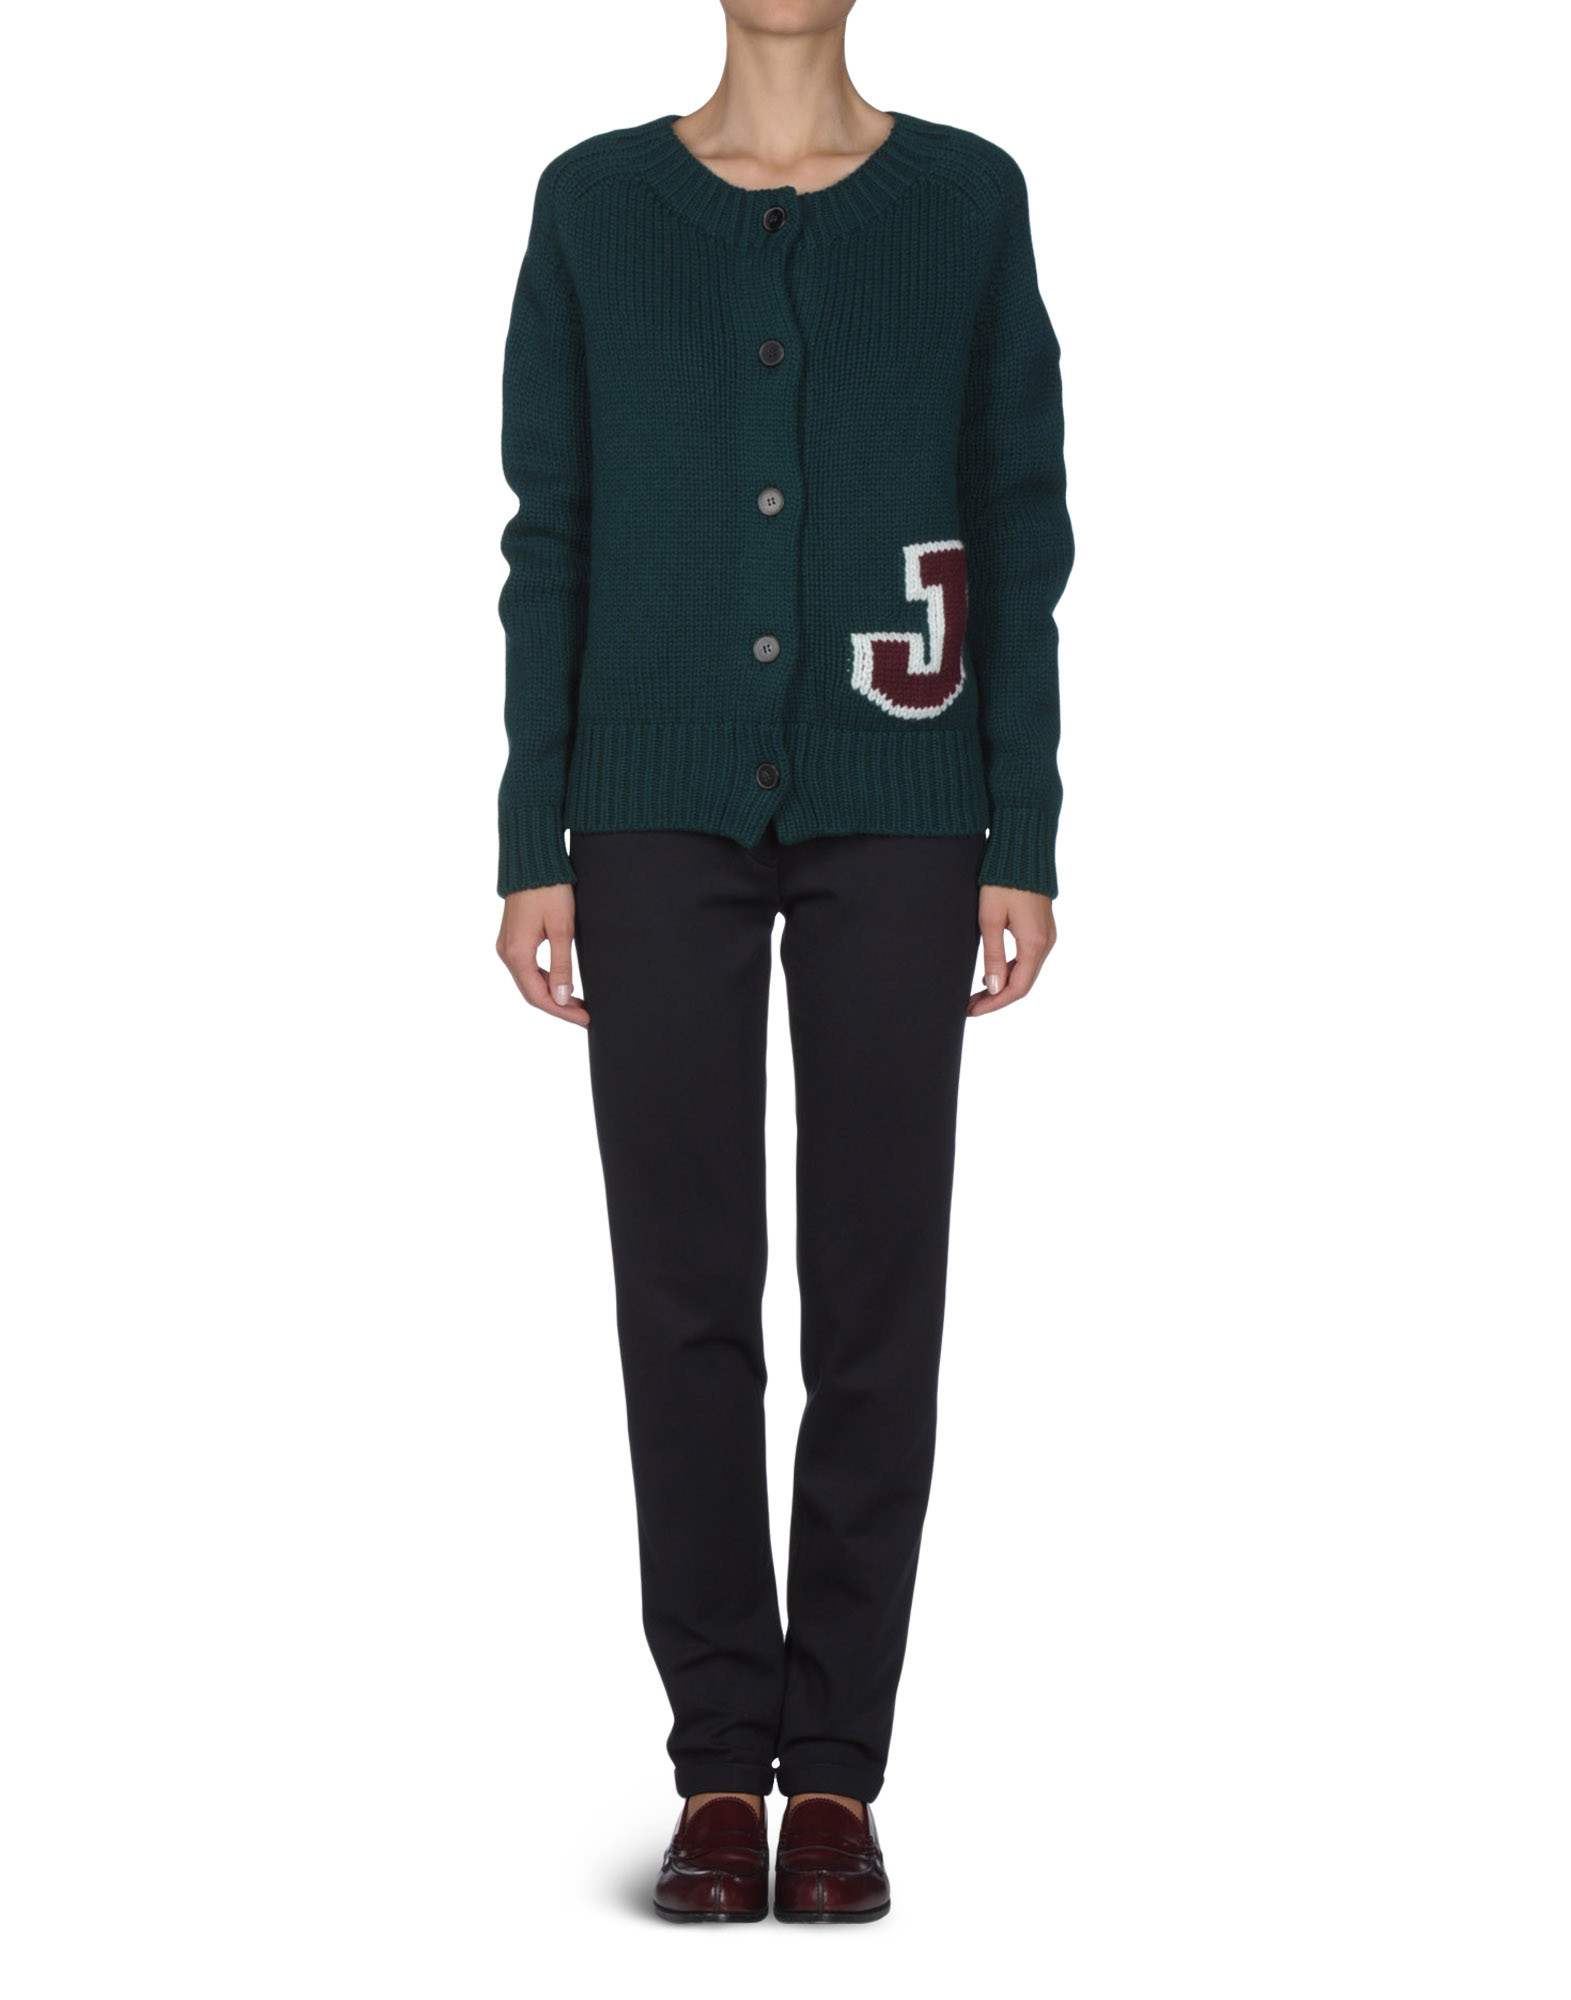 Cropped Trousers - JIL SANDER Online Store